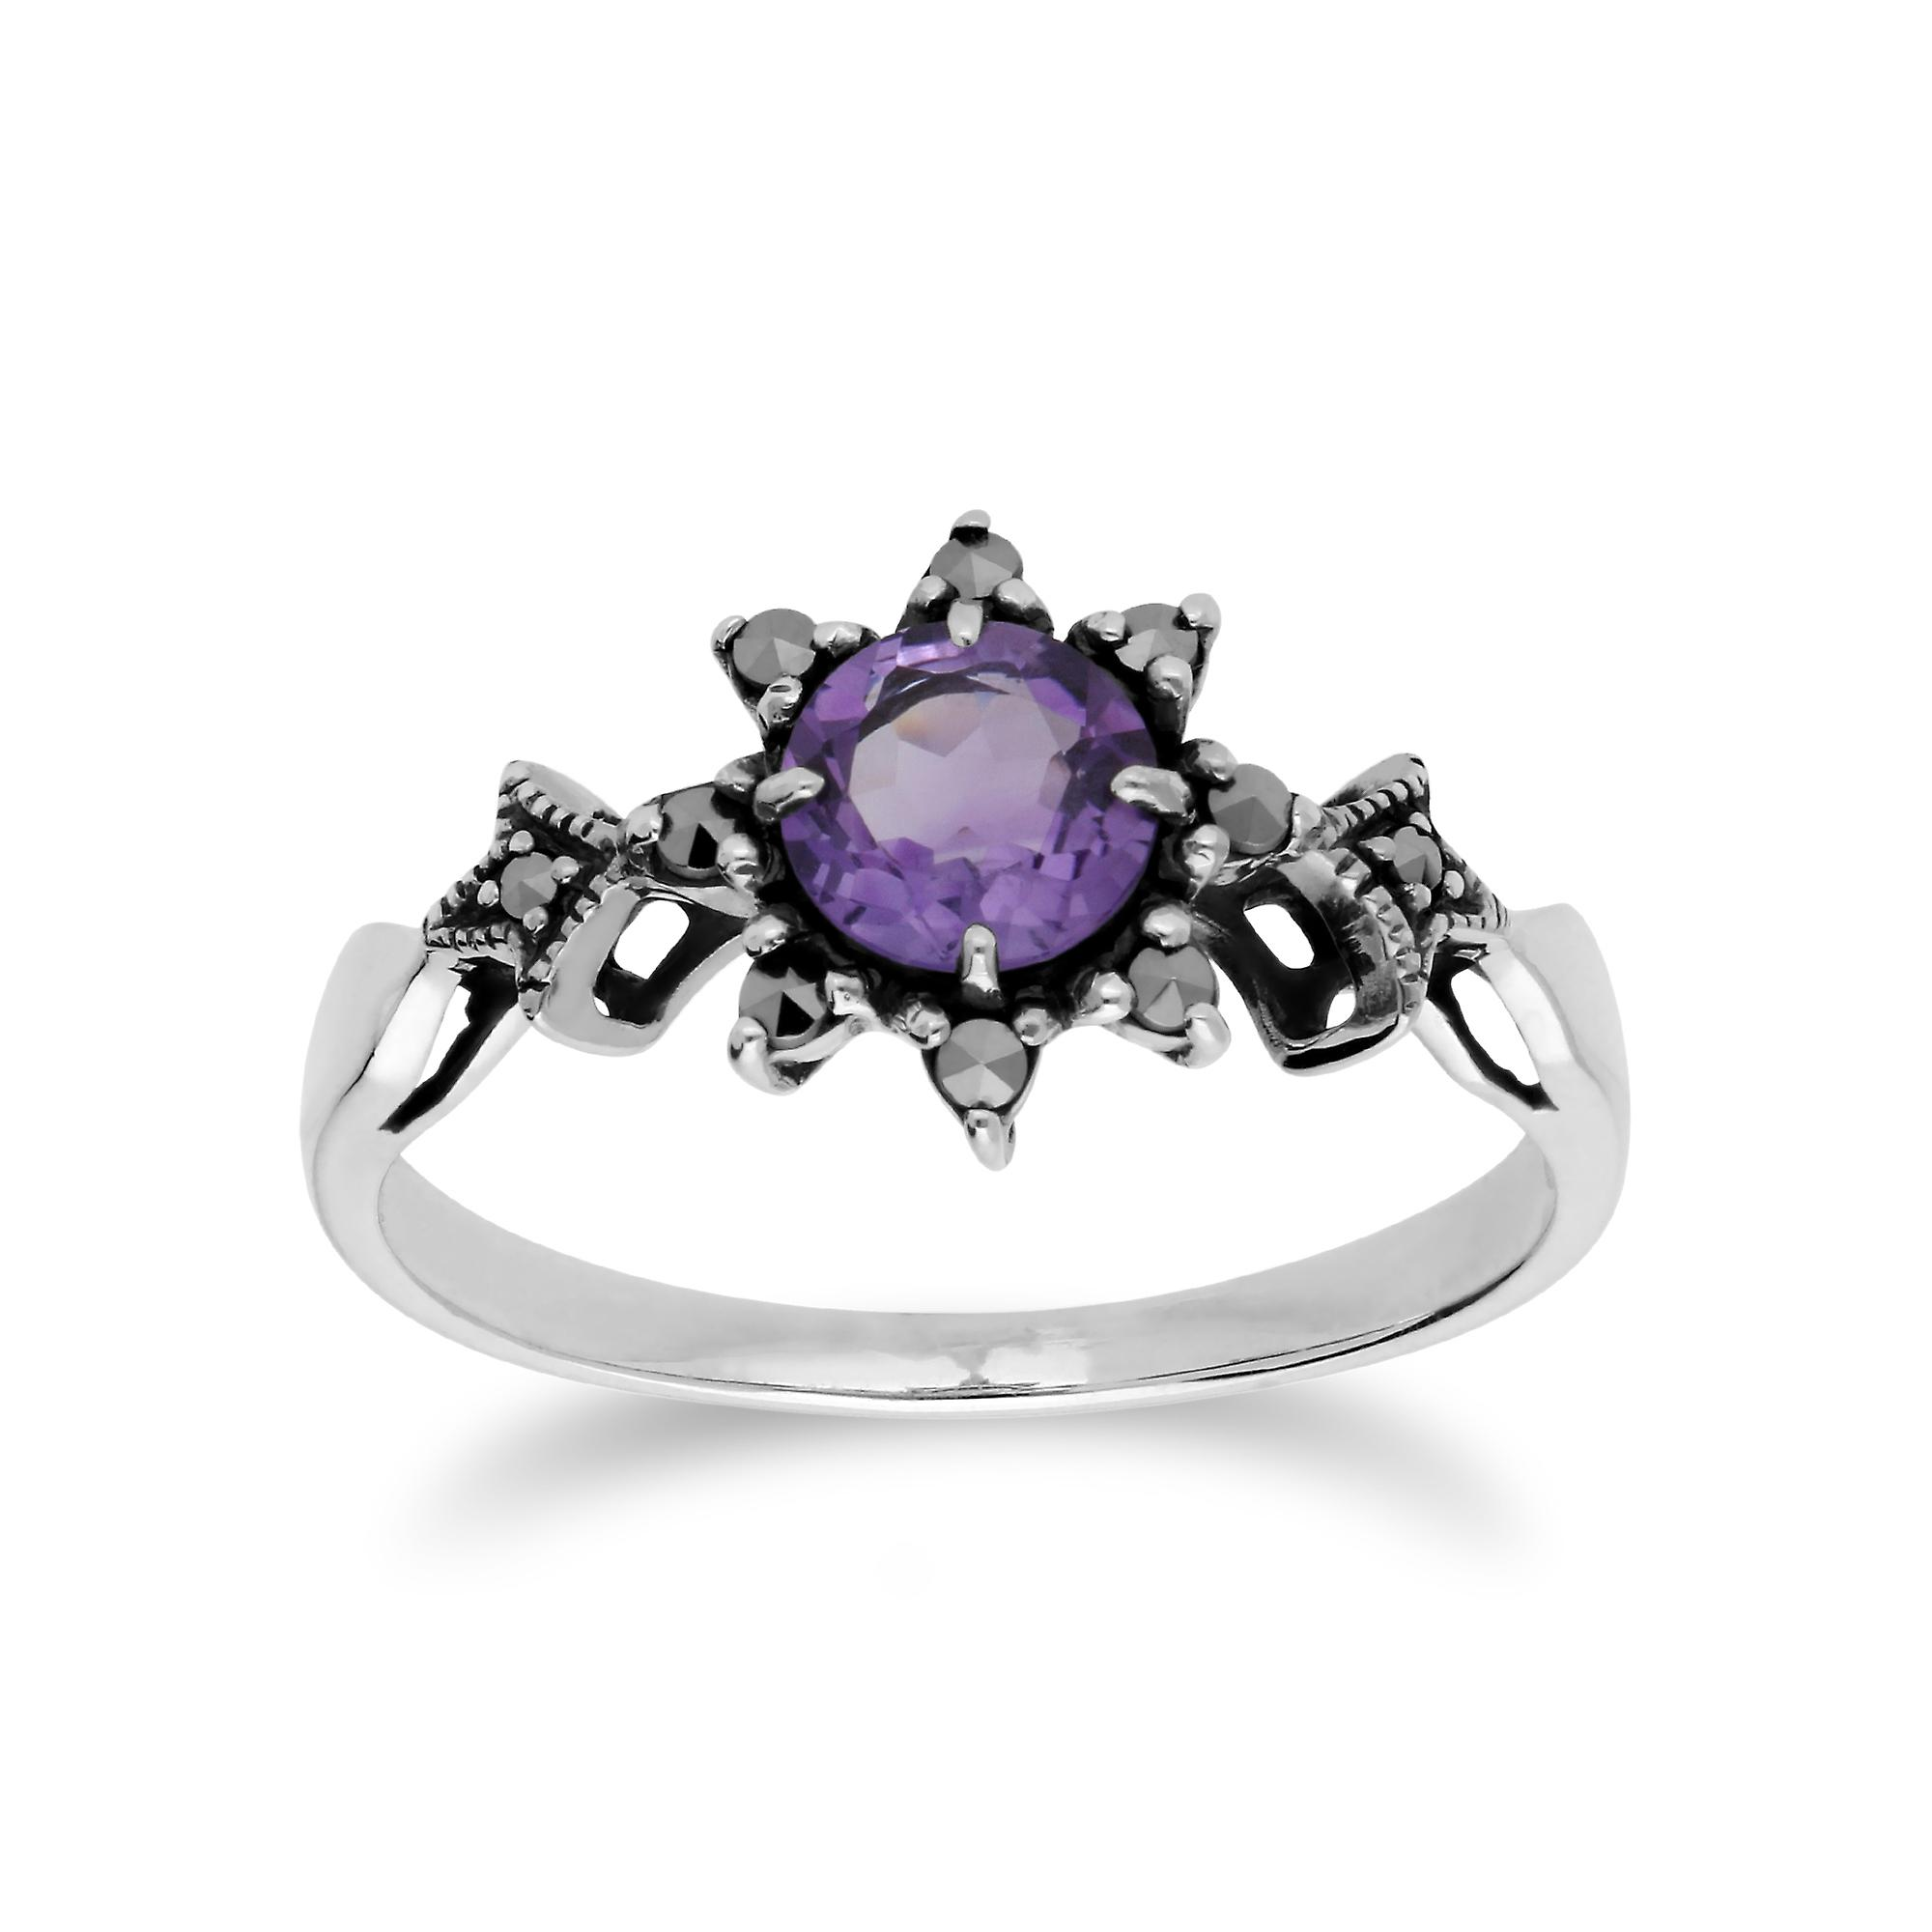 Gemondo Sterling Silver Amethyst & Marcasite February Art Nouveau Style Ring